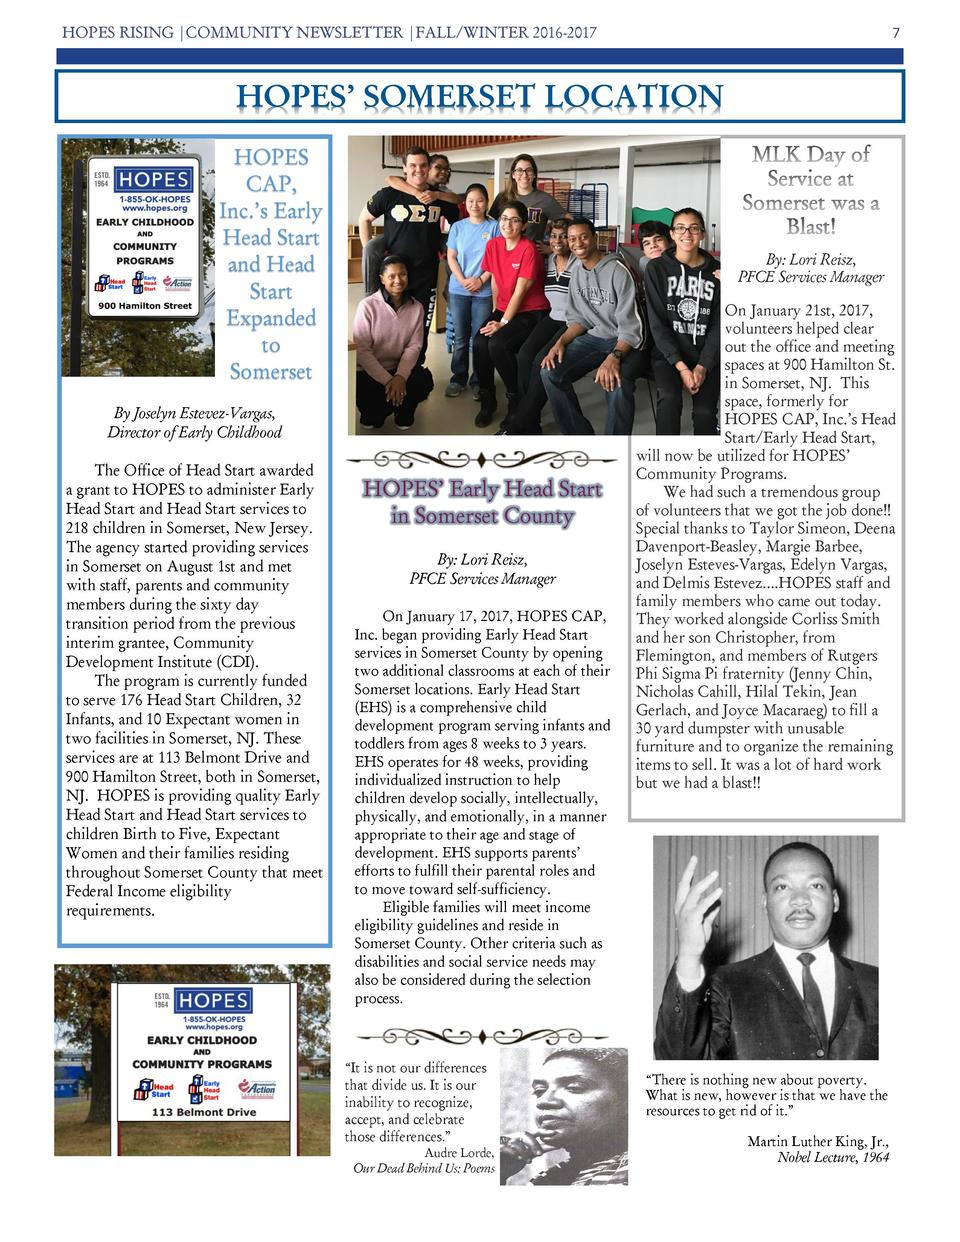 HOPES RISING  COMMUNITY NEWSLETTER  FALL WINTER 2016-2017  7  HOPES    SOMERSET LOCATION HOPES CAP, Inc.   s Early Head St...